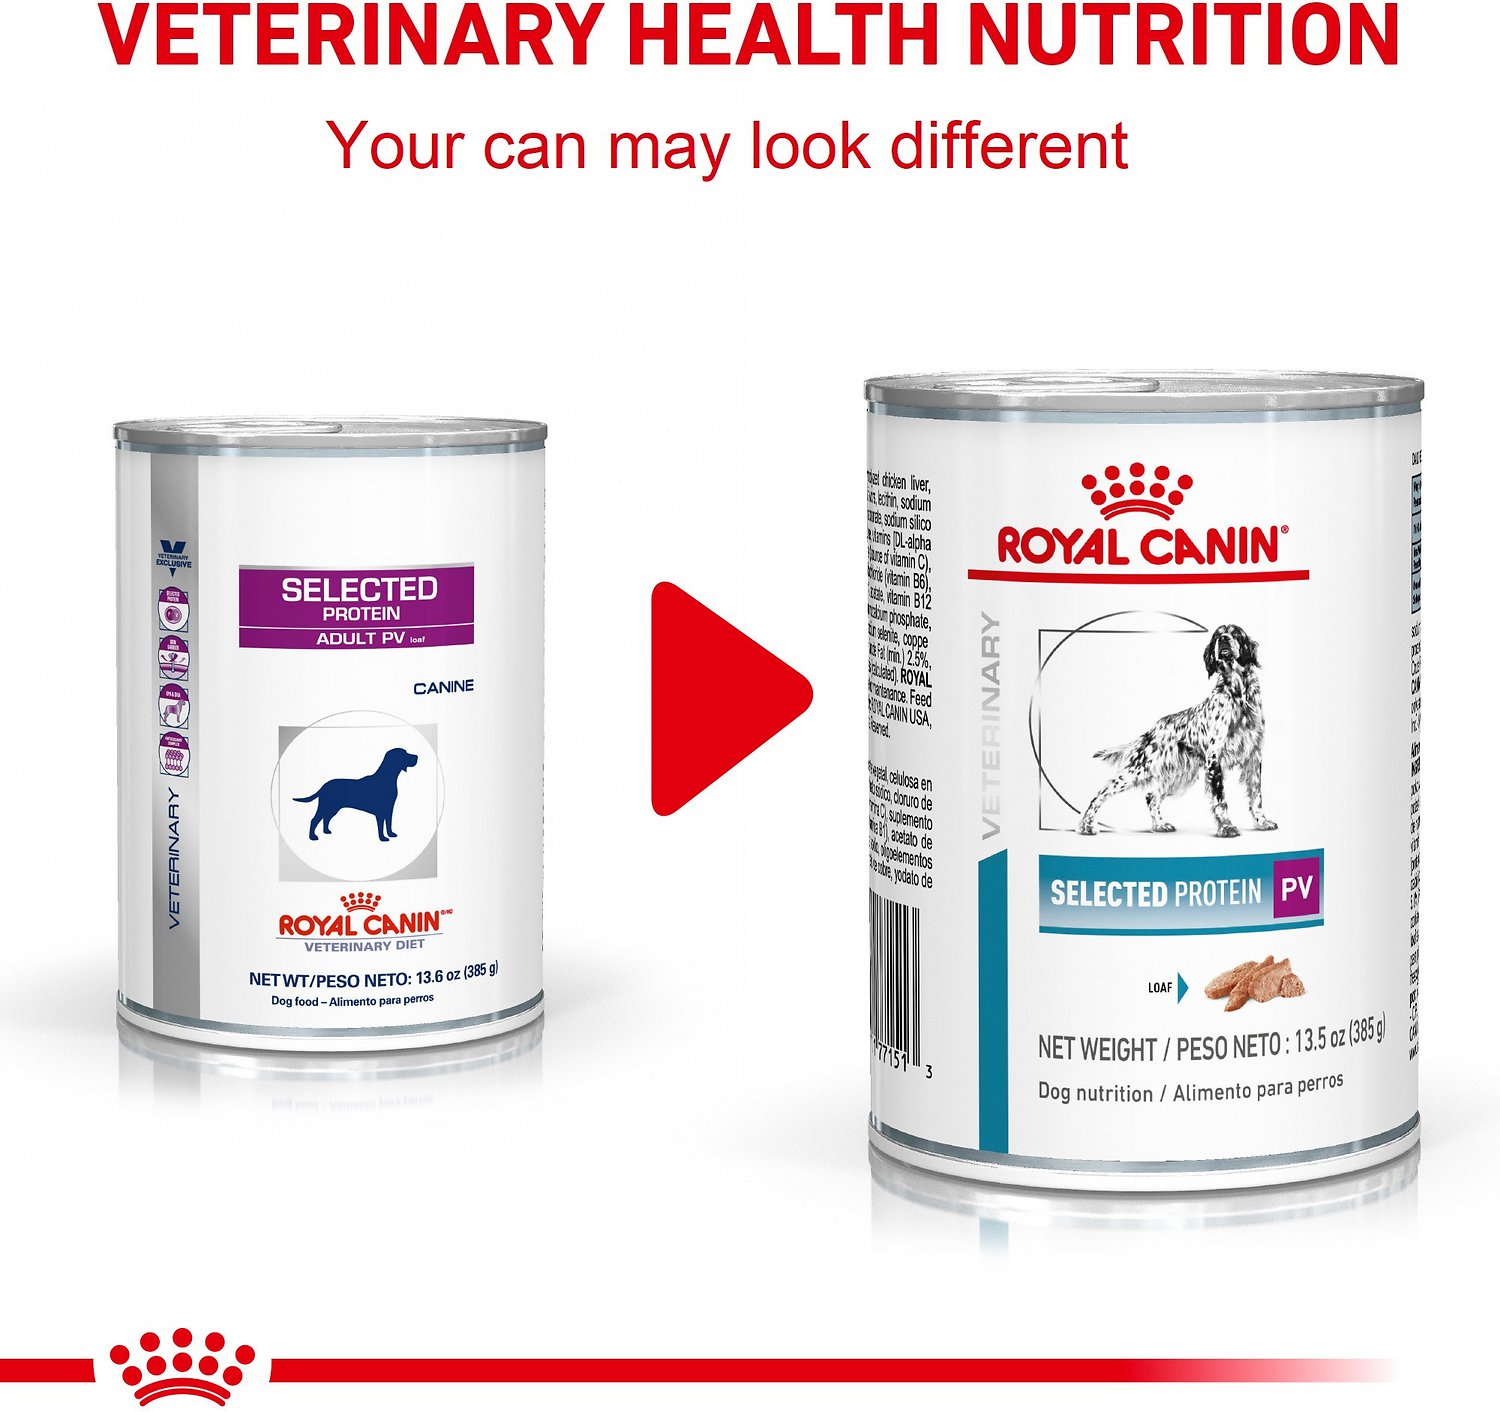 Royal Canin Prescription Pv Dog Food